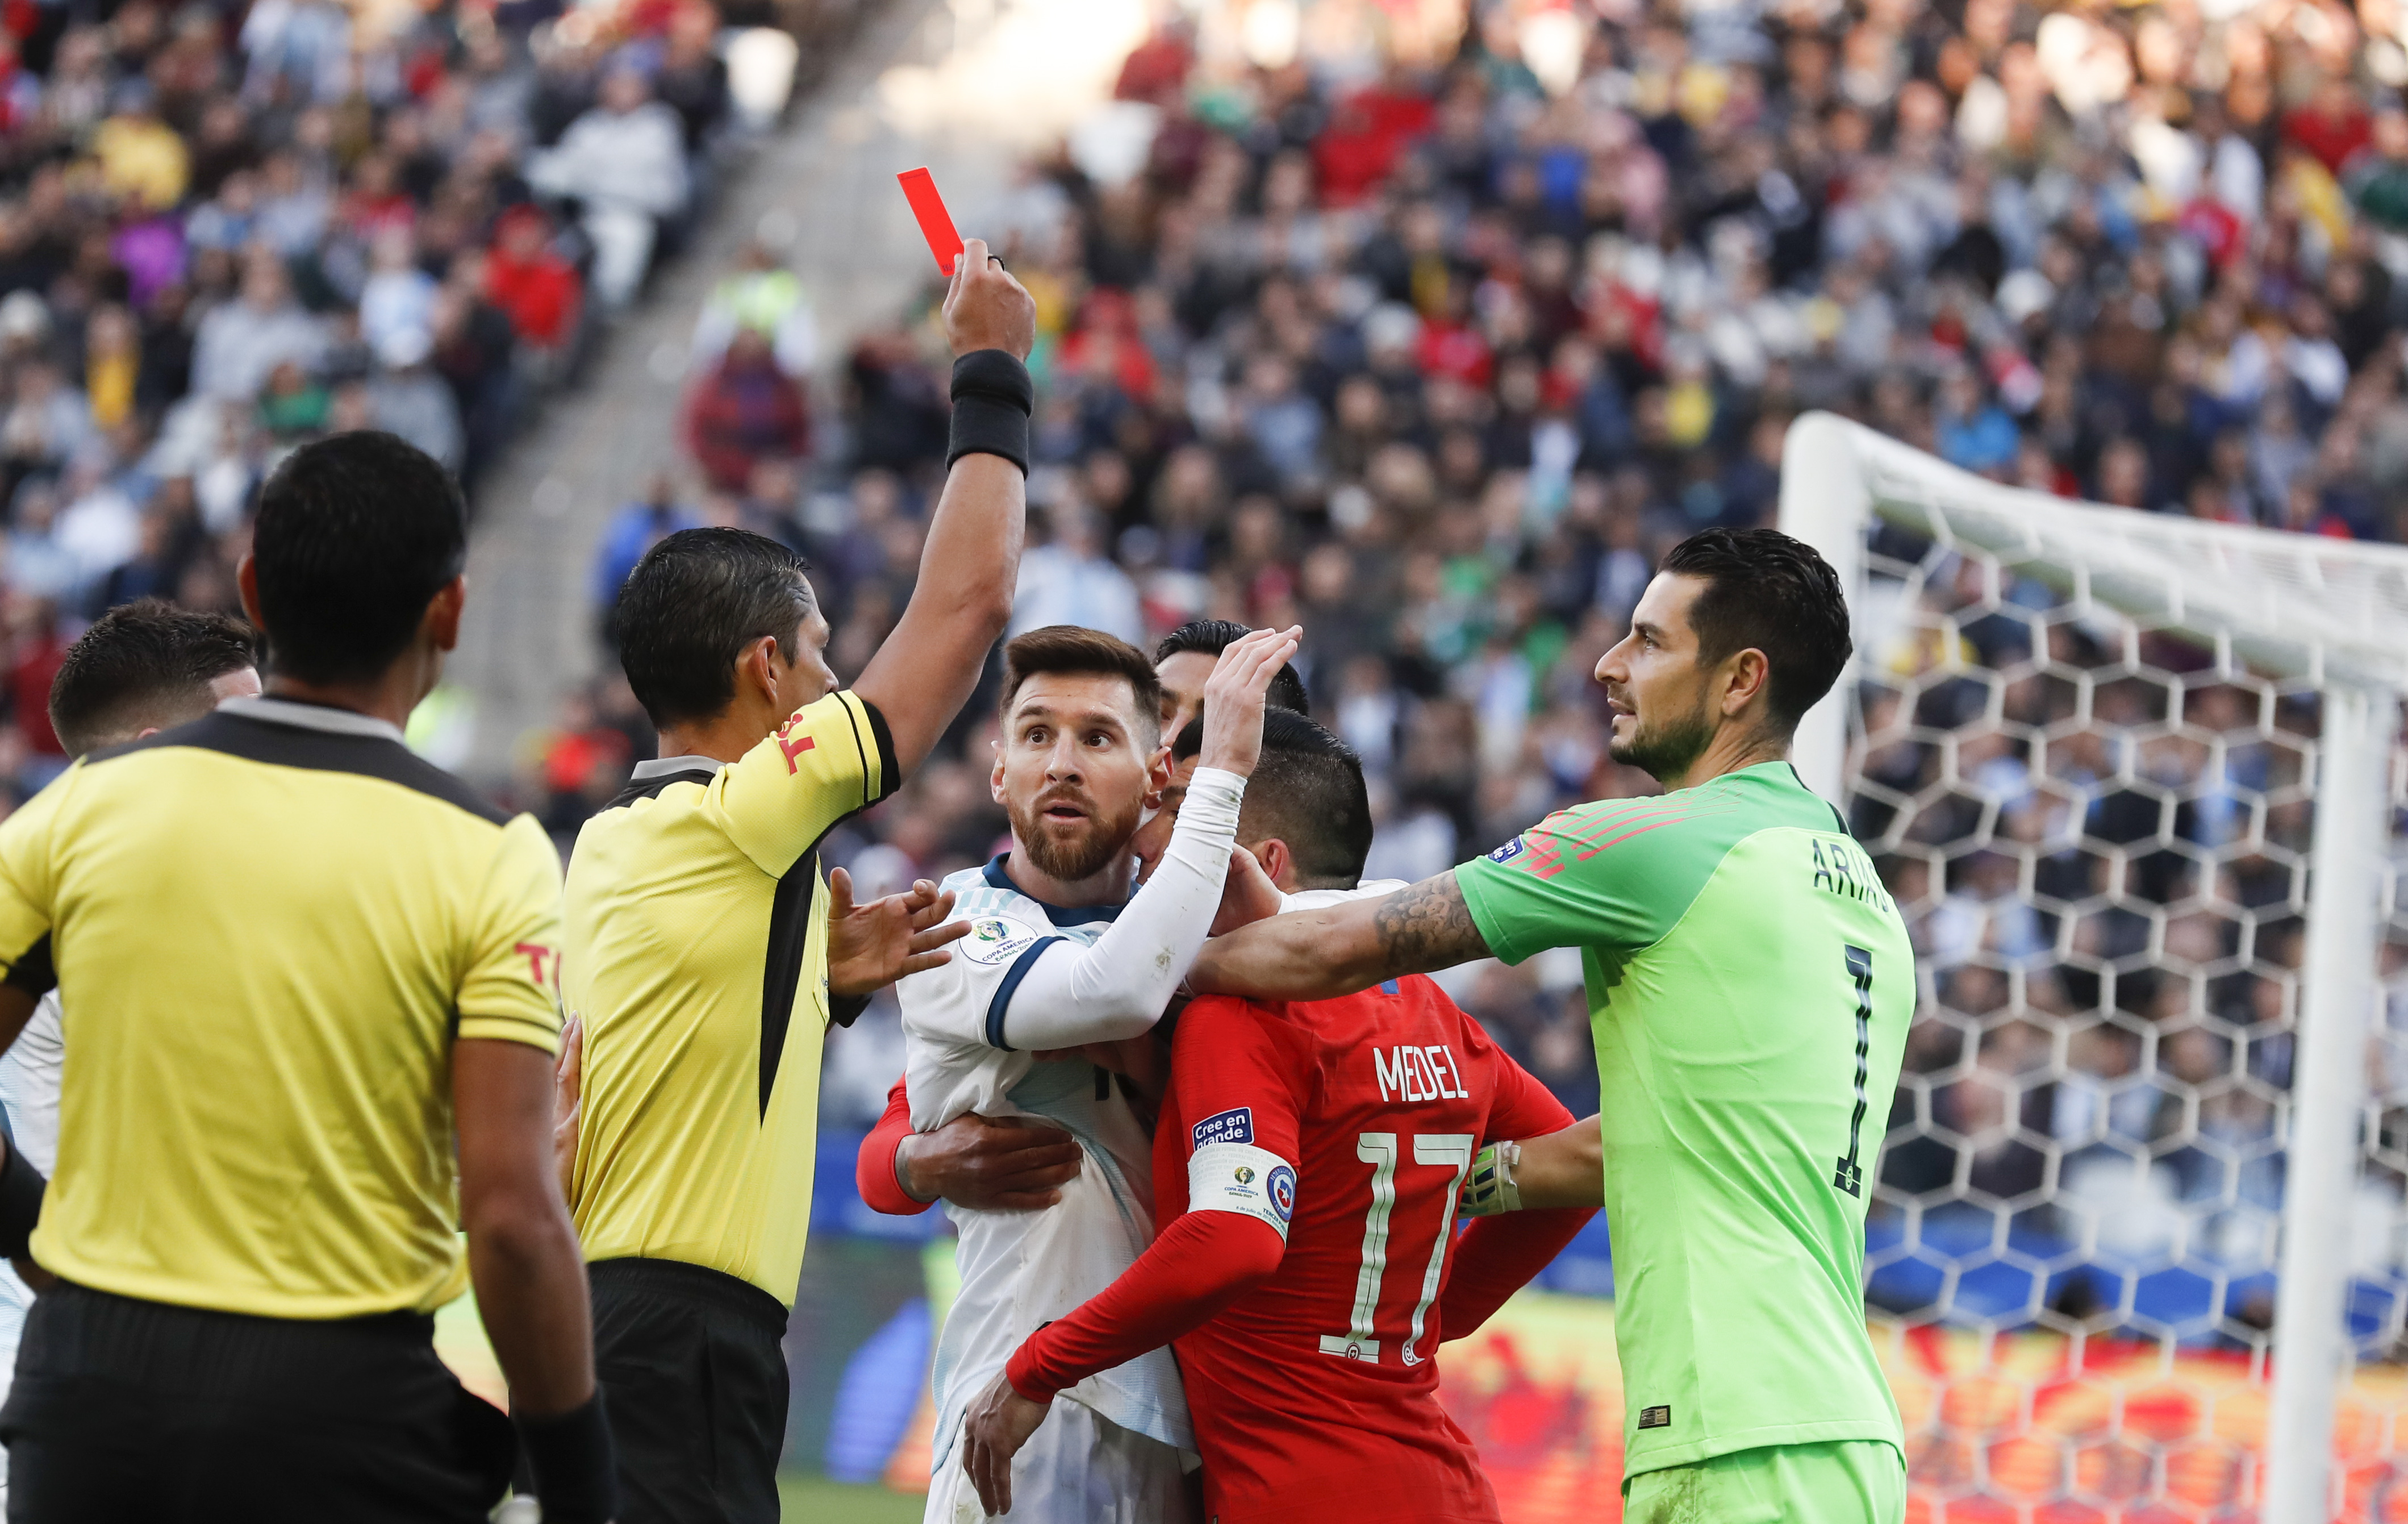 Messi was sent off against Chile. Image: PA Images